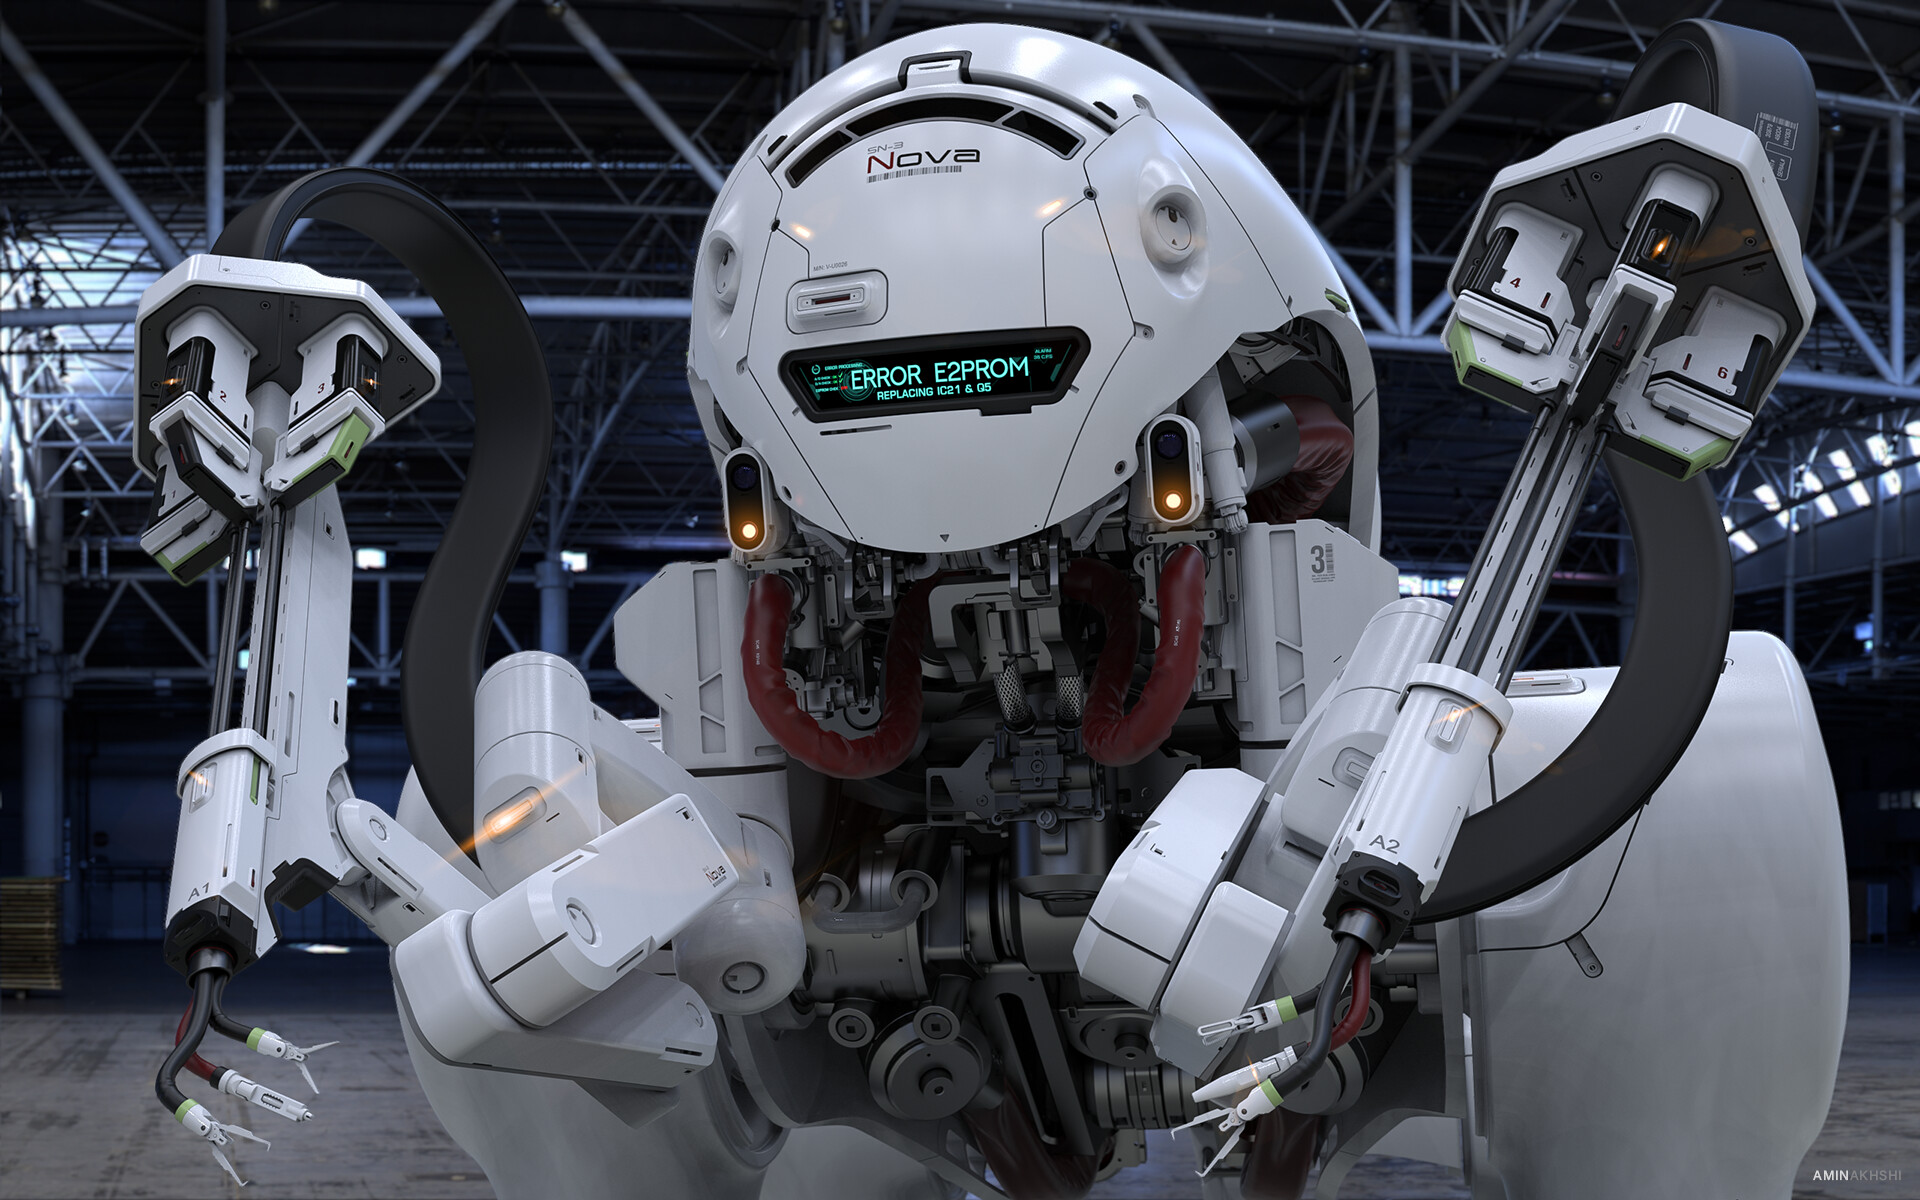 The front of the robot